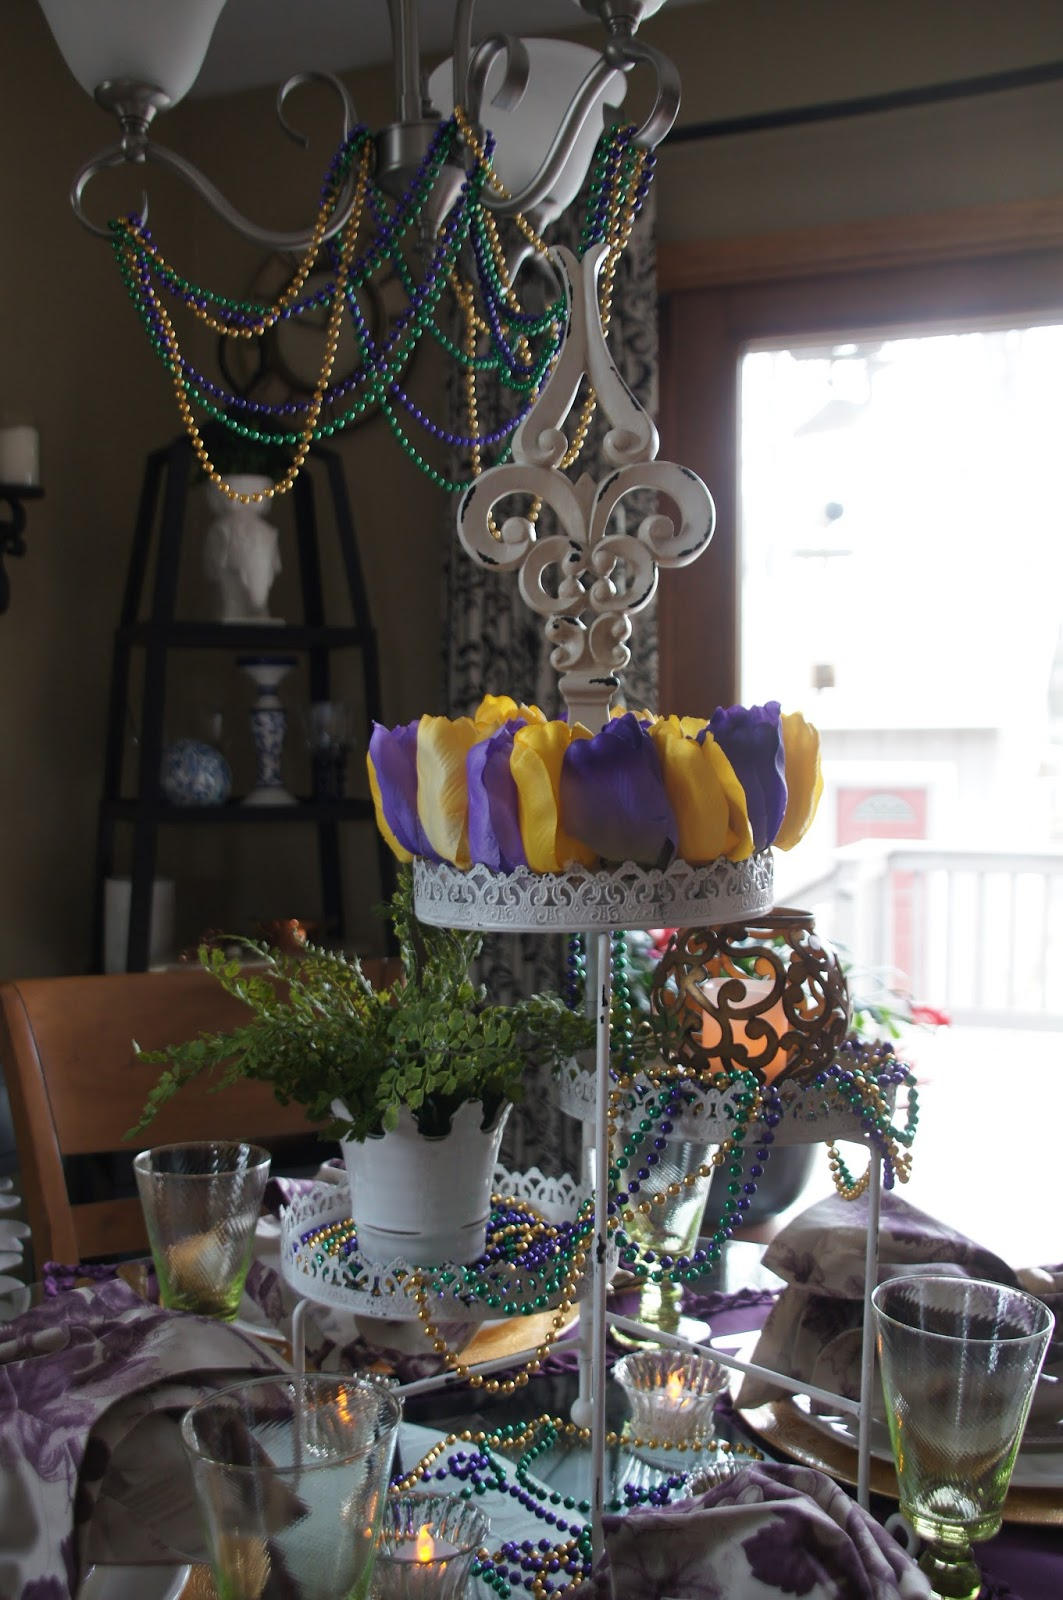 Home And Gardening With Liz Nola Inspired Mardi Gras